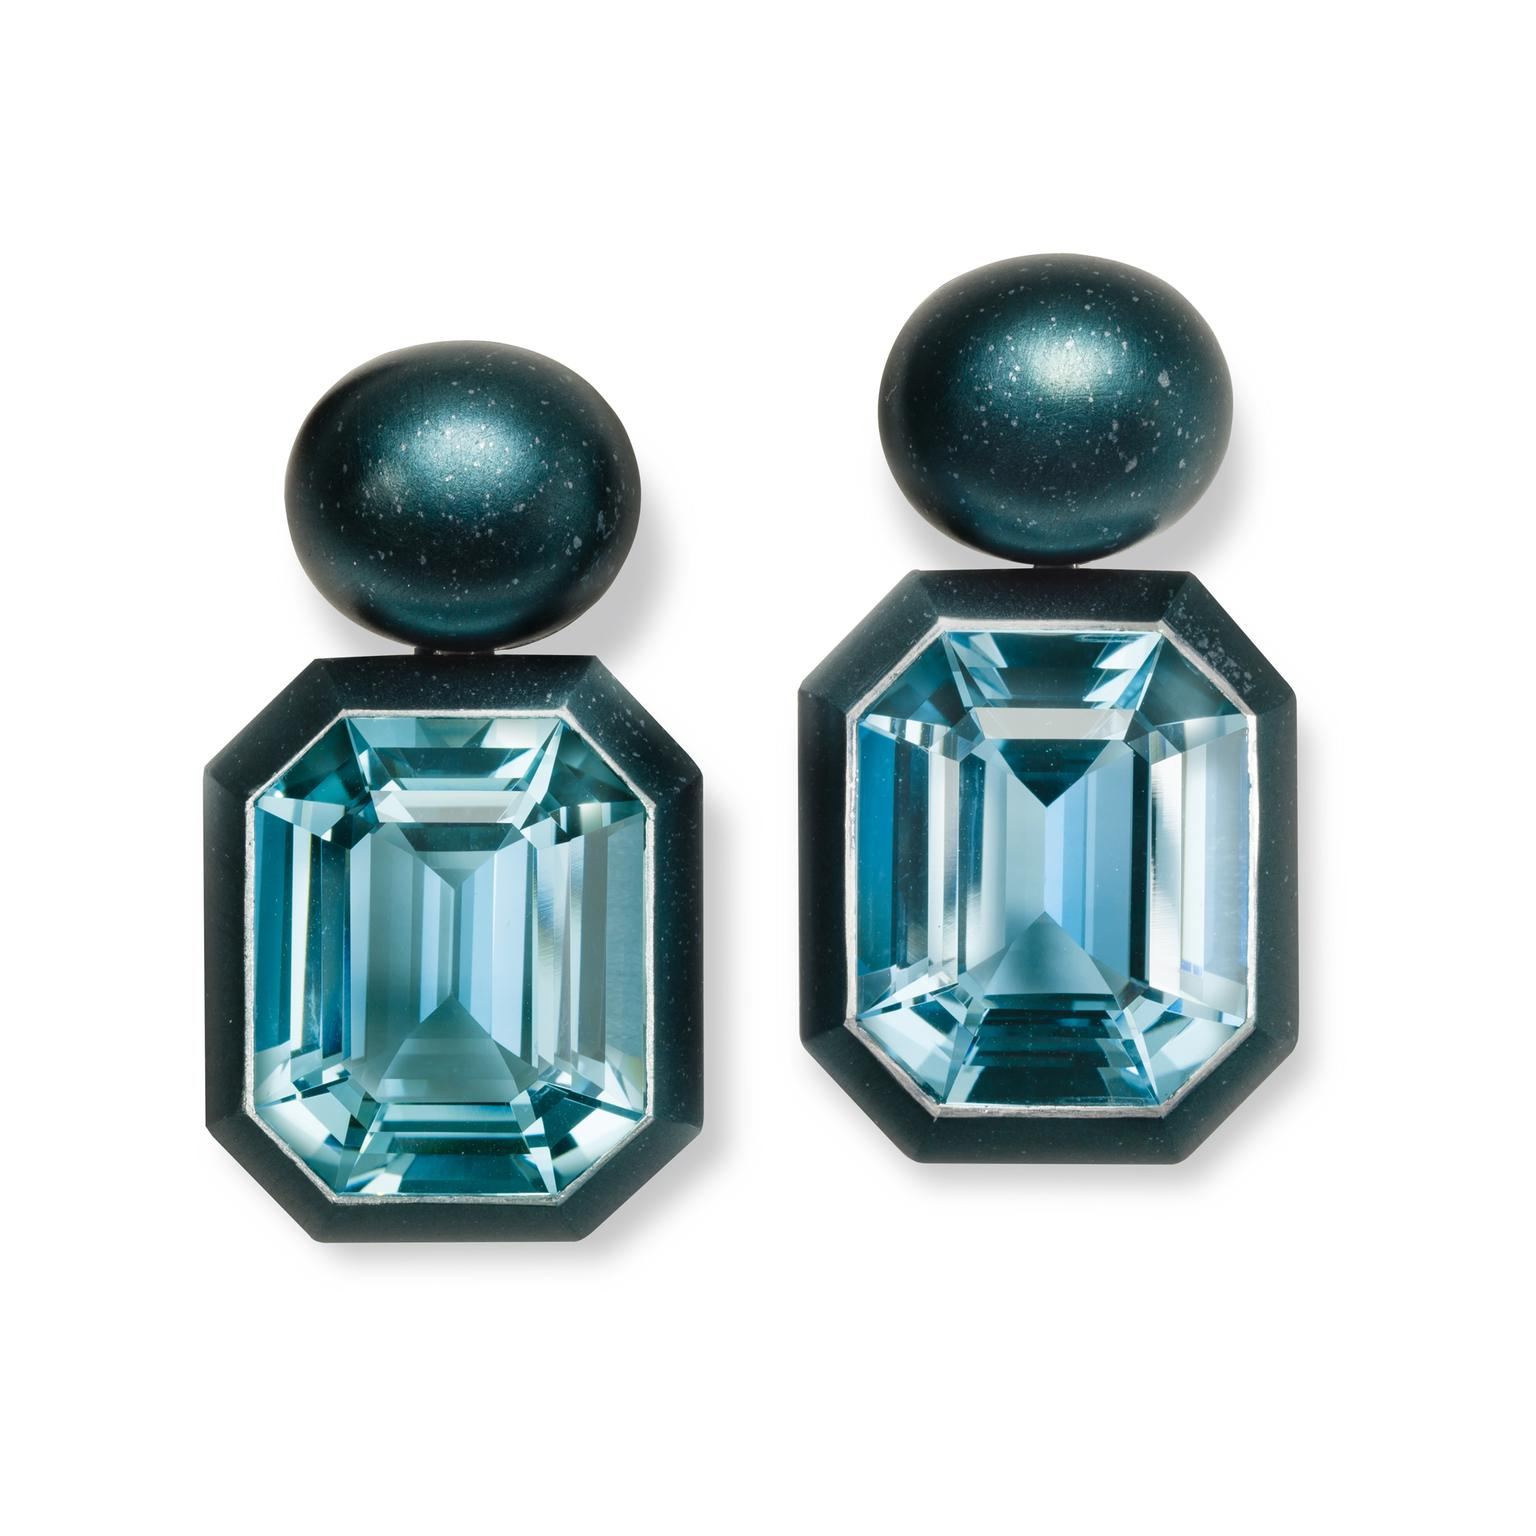 Hemmerle aquamarine aluminium earrings